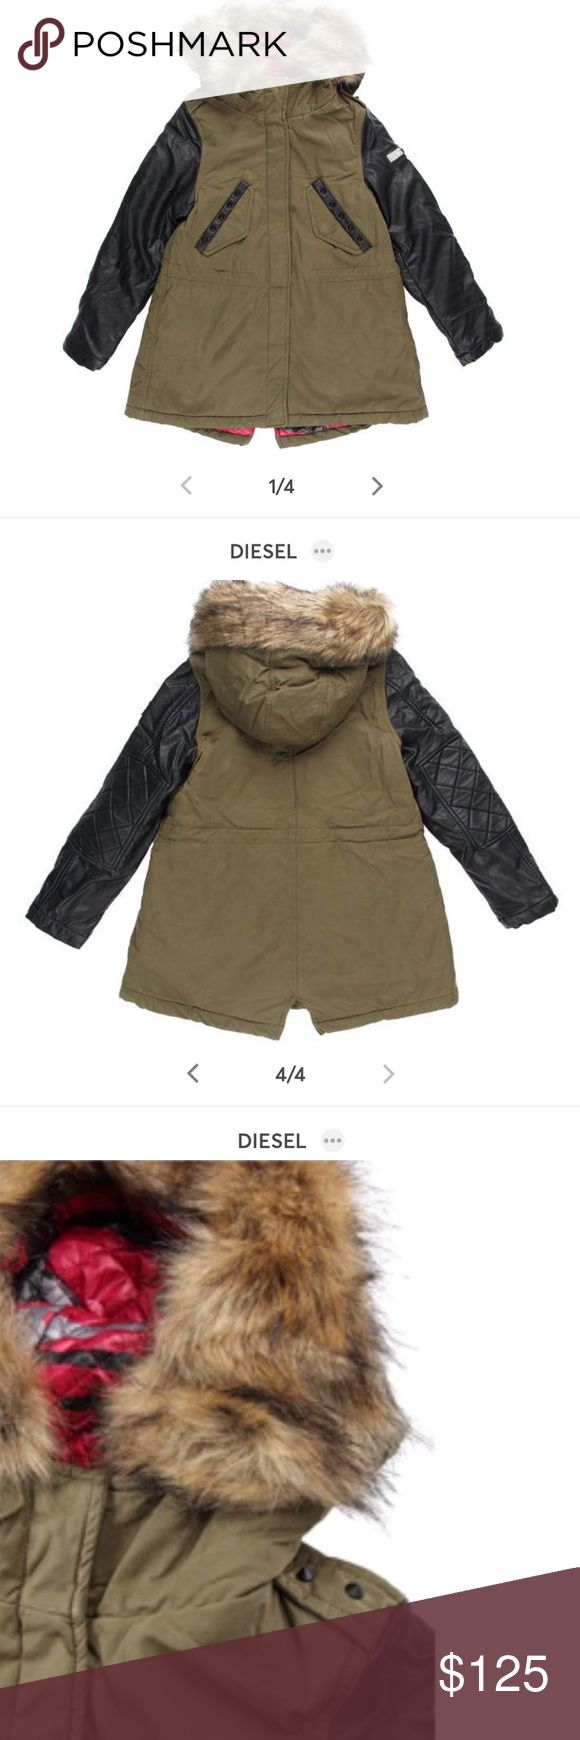 Diesel Olive Green Coat Gently used Diesel coat. Original price $200. Well made and warm. Faux leather sleeves but great quality. Removal faux fur hood lining. Hood is attached. Can also fit a 6x/7. My daughter wears an 8 now and fits a little tight.  Has a small fading as pictured but barely noticeable unless you look hard.   Reasonable offers accepted. No low balls! Diesel Jackets & Coats